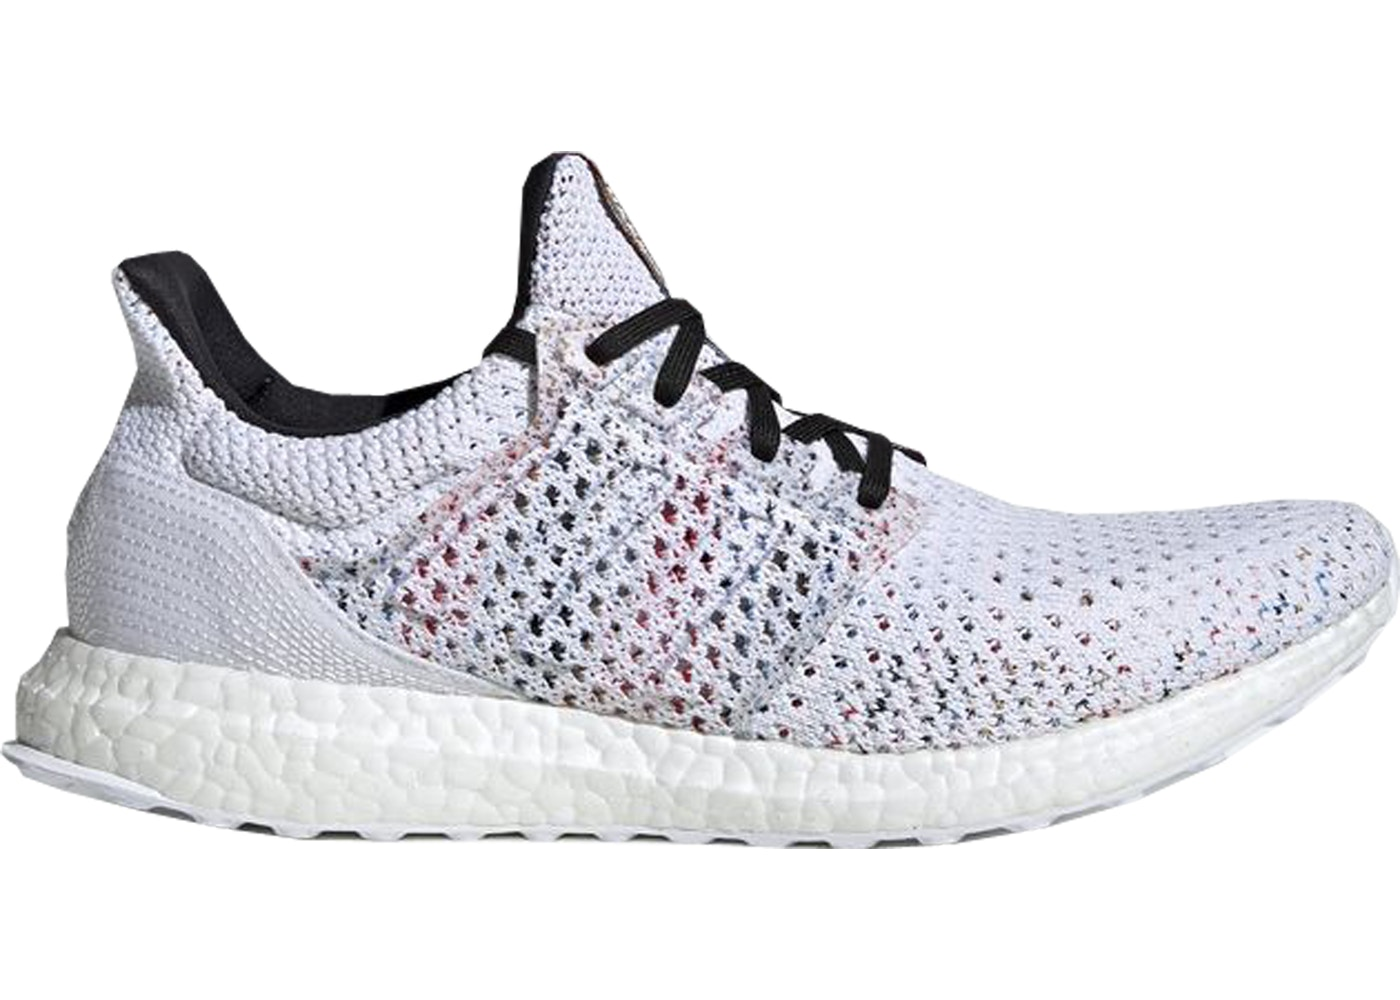 11b961ecbca Sell. or Ask. Size  5.5. View All Bids. adidas Ultra Boost Clima ...